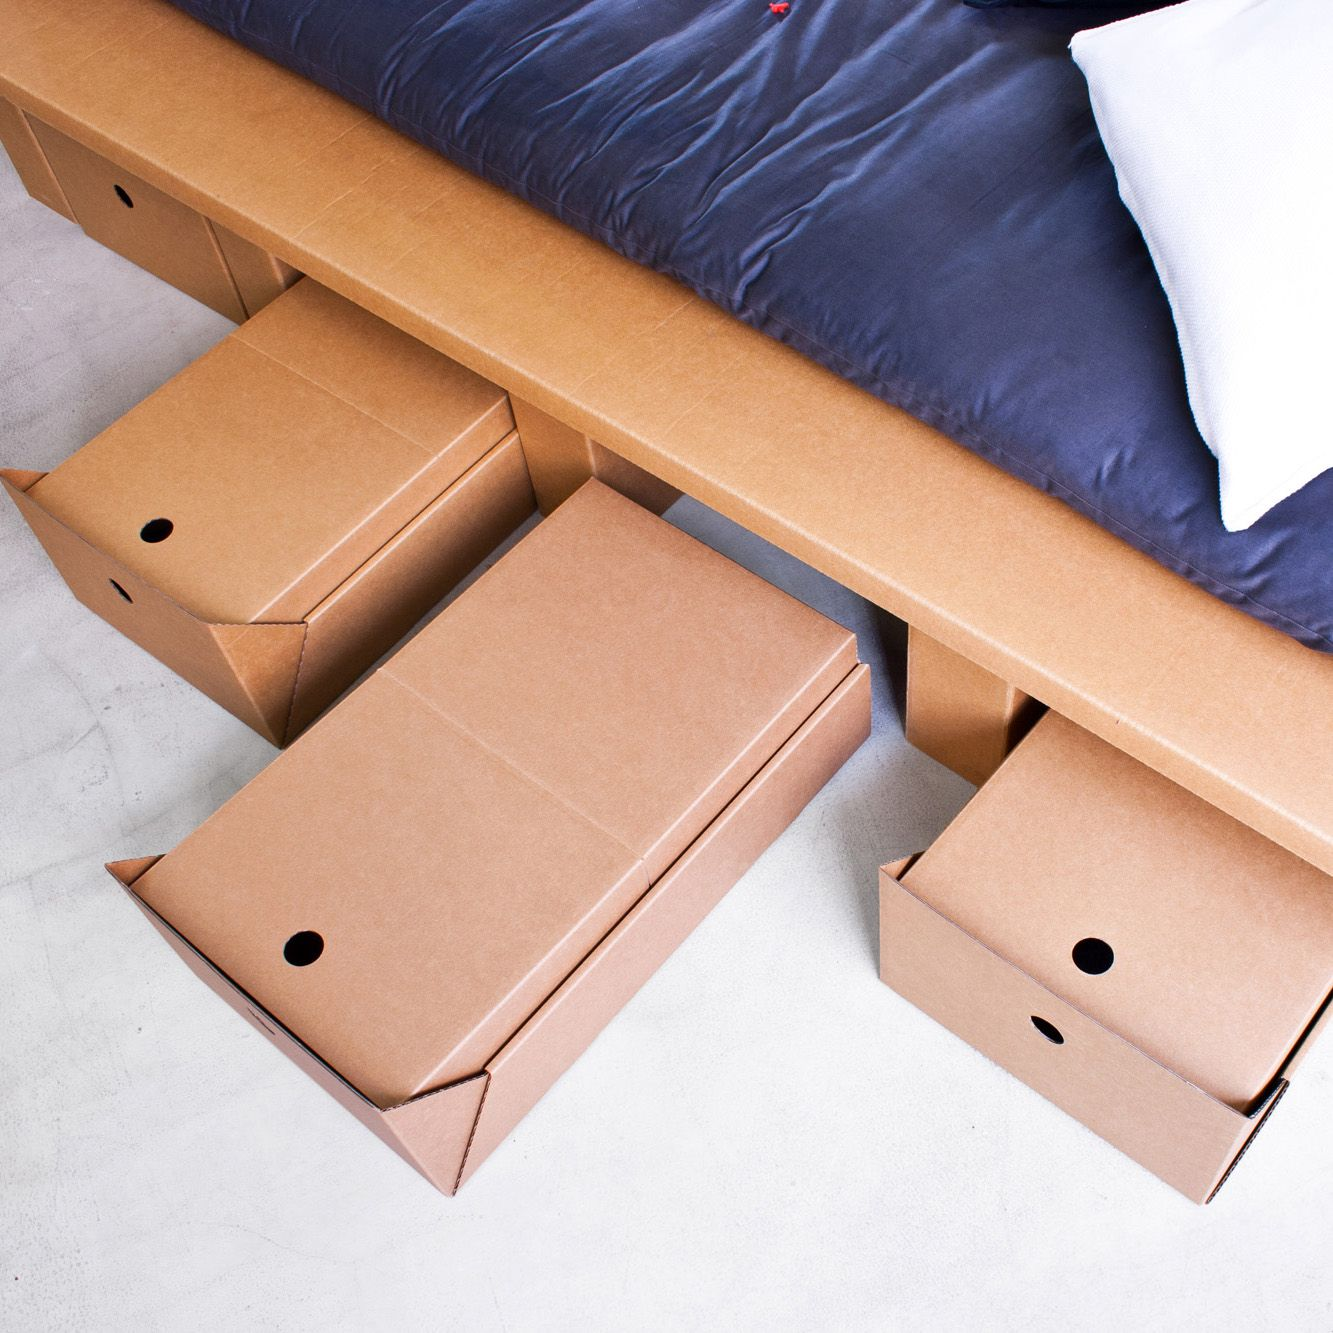 Möbel Basteln Cardboard Bed With Drawers Stange Design Berlin